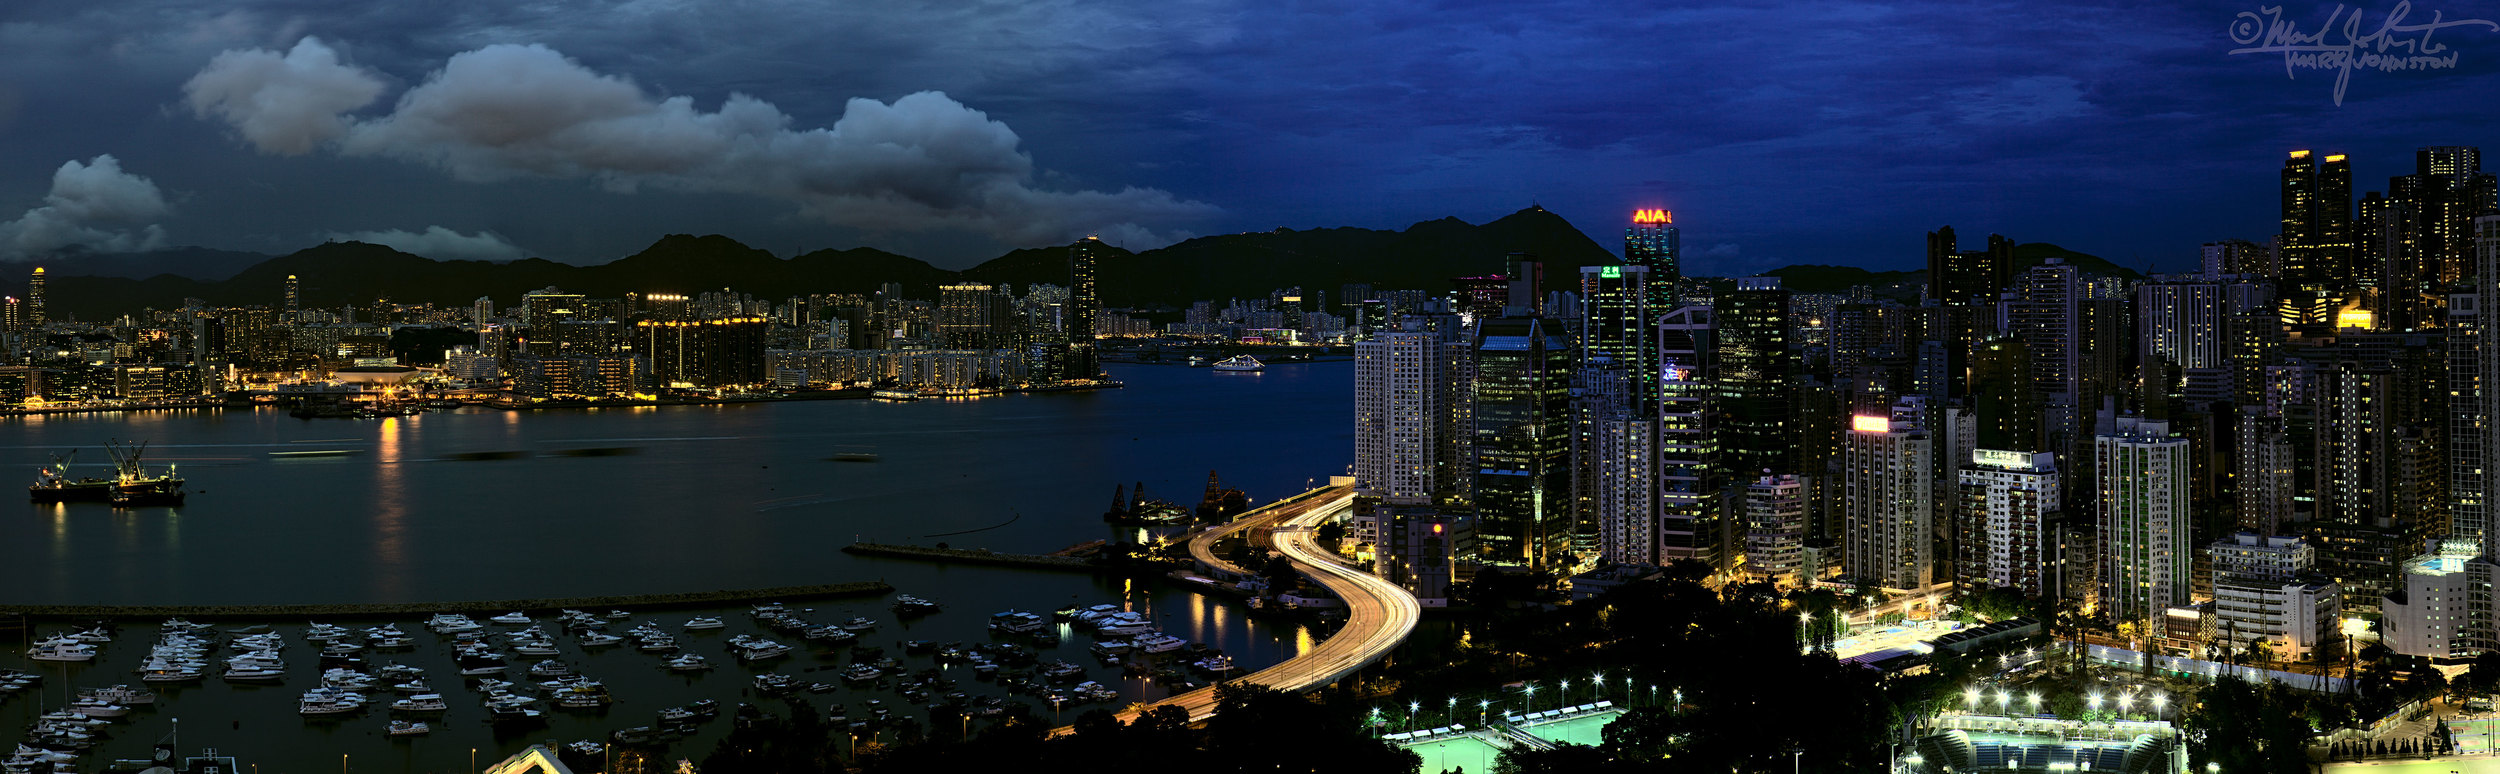 Hong Kong, and across Victoria Harbor, Kowloon, from the Causeway Bay area.